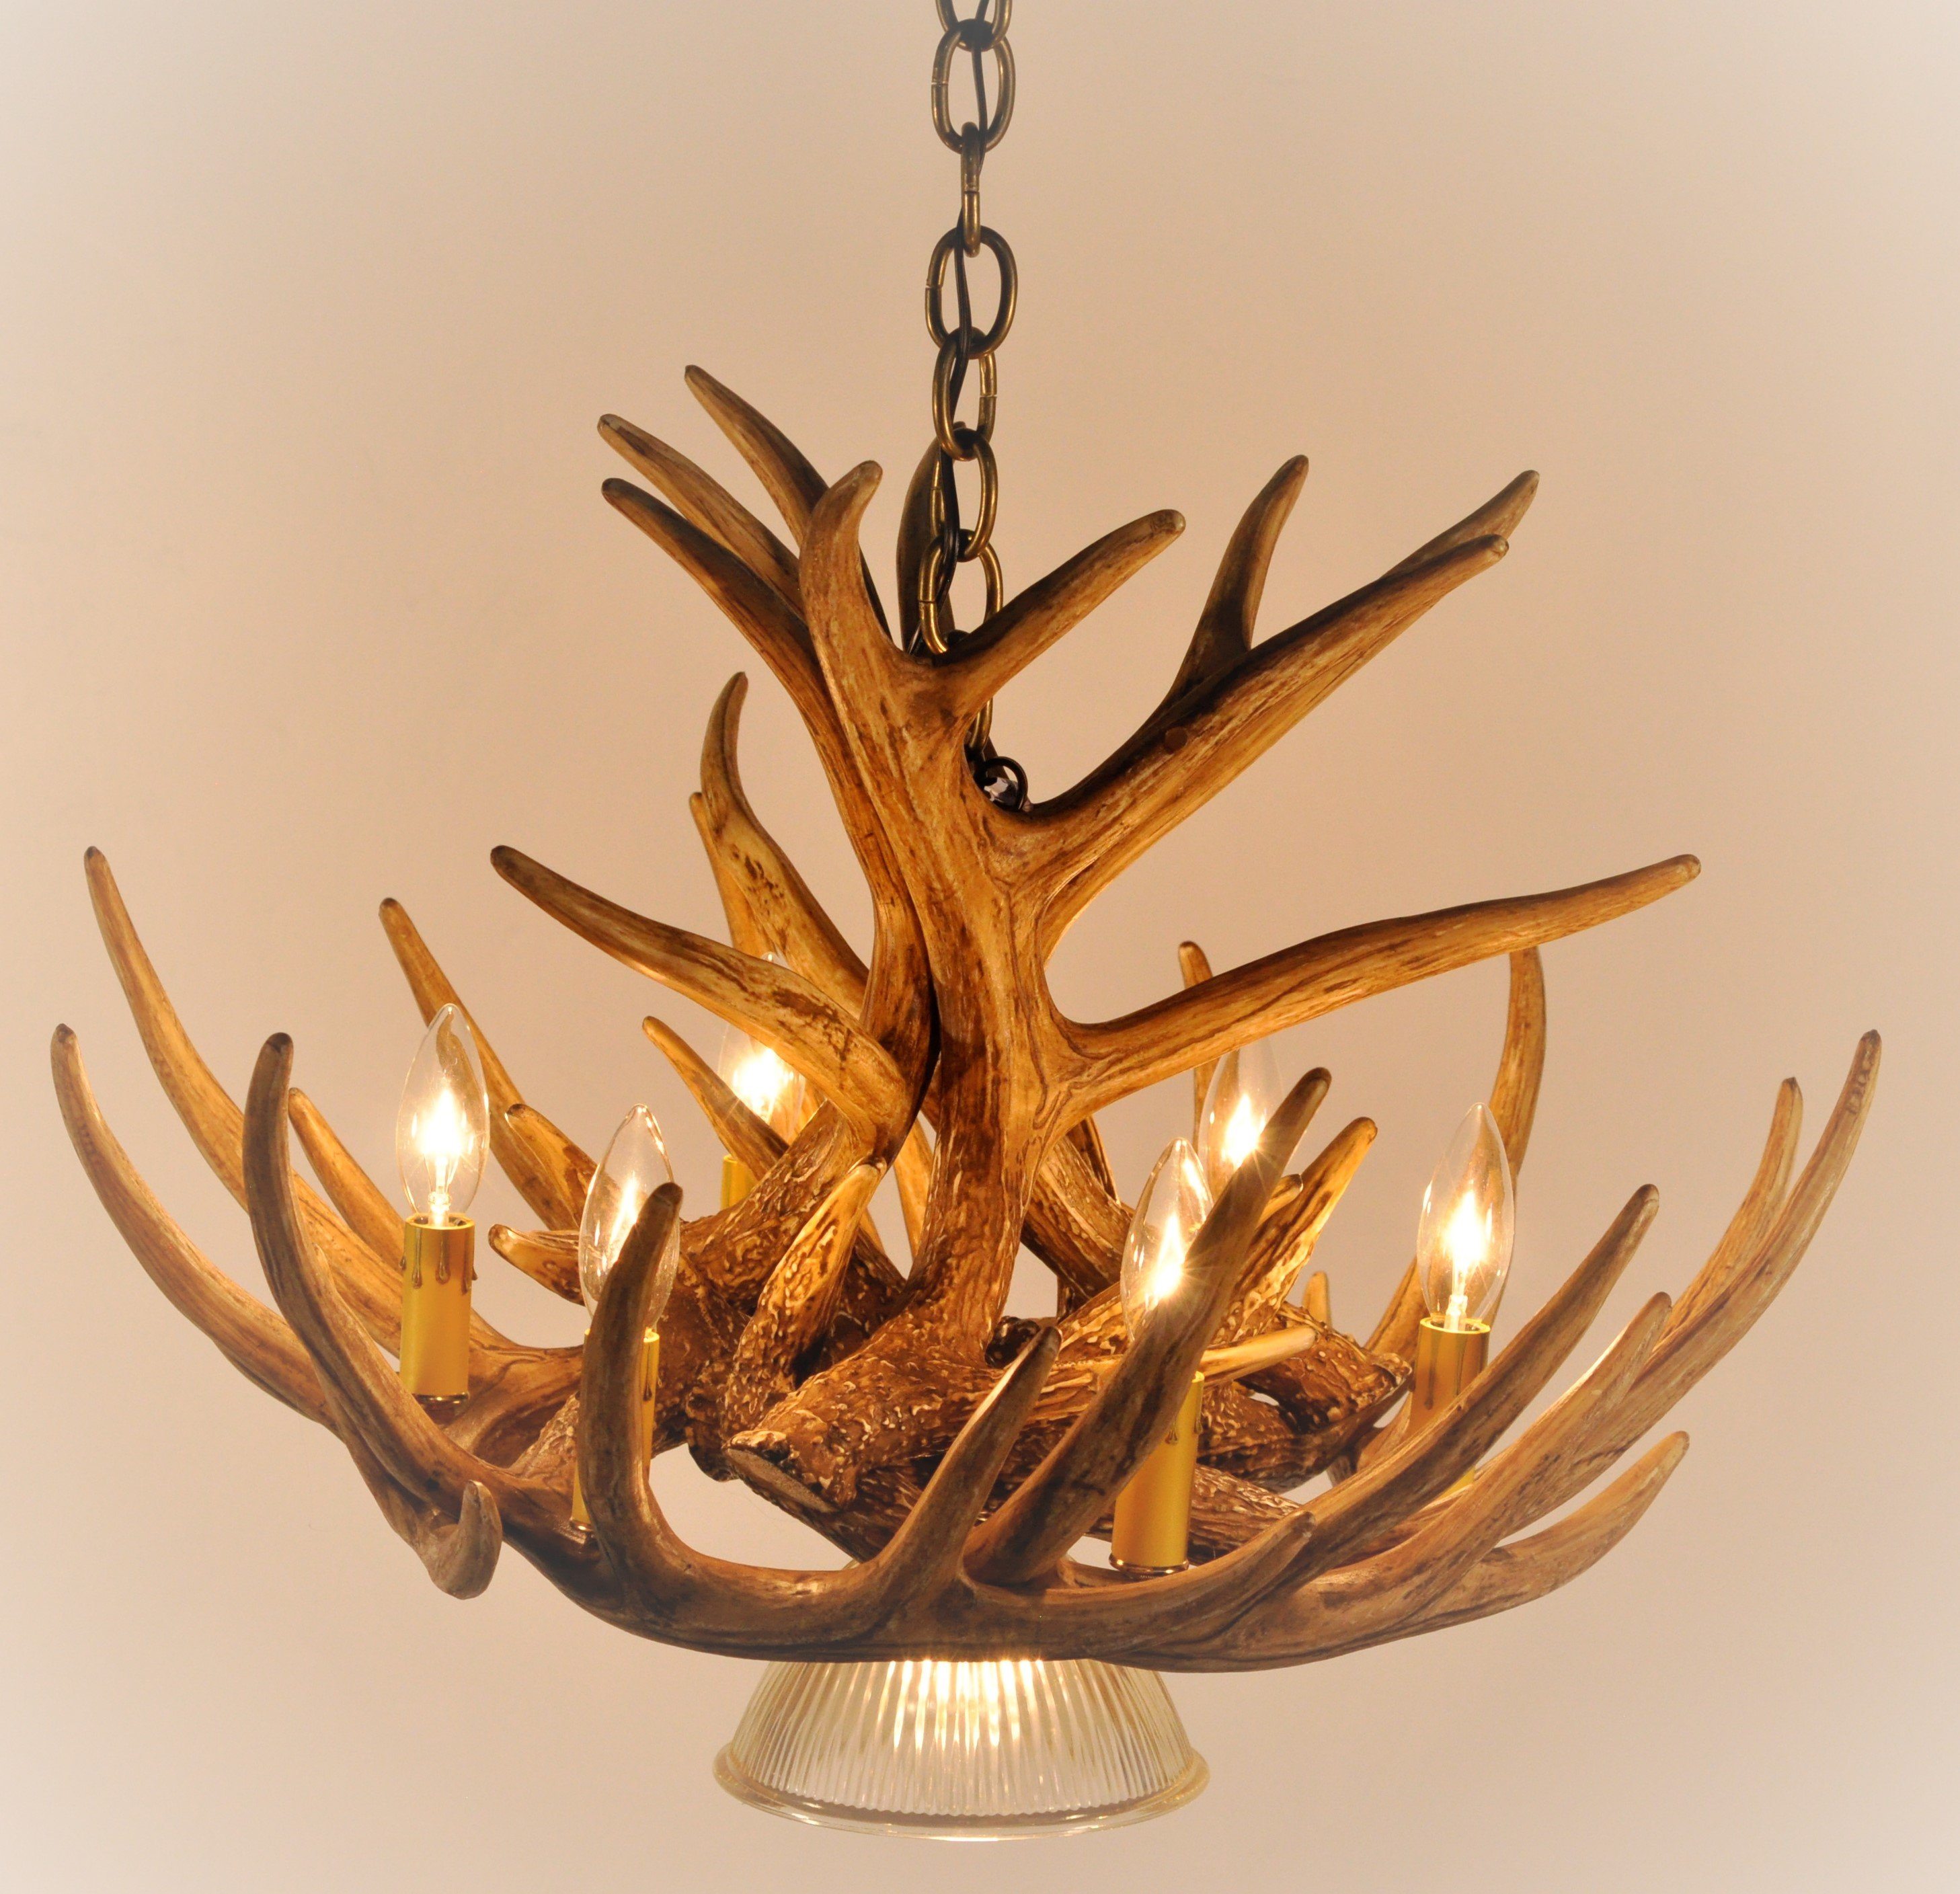 Real antler chandeliers uk chandelier designs antler chandeliers rustic lighting cast horn designs mozeypictures Image collections